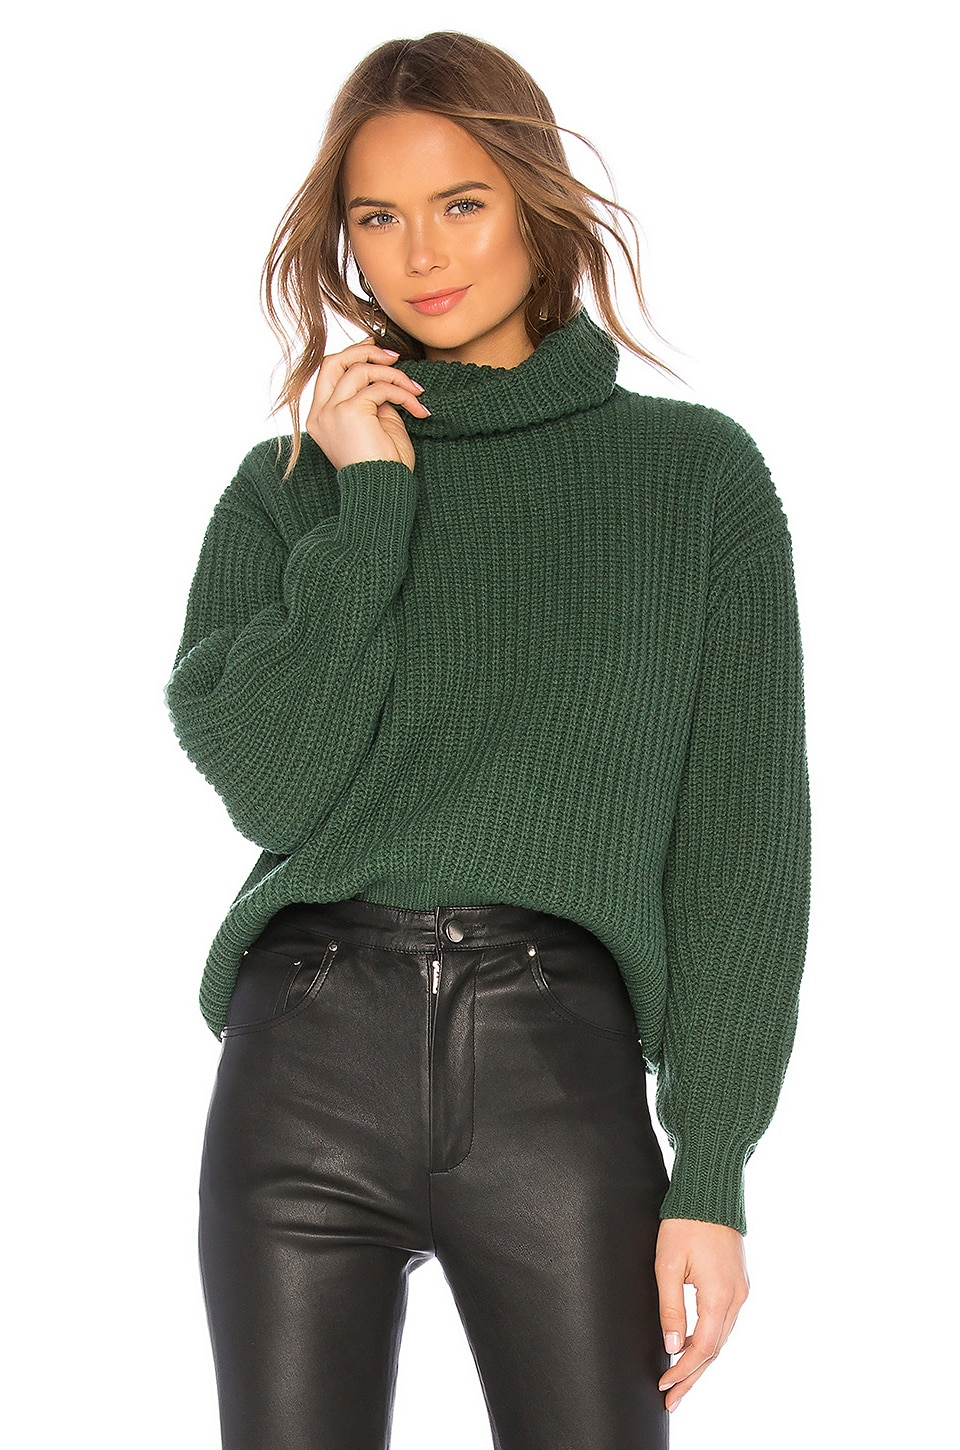 Lovers + Friends Quin Sweater in Emerald Green